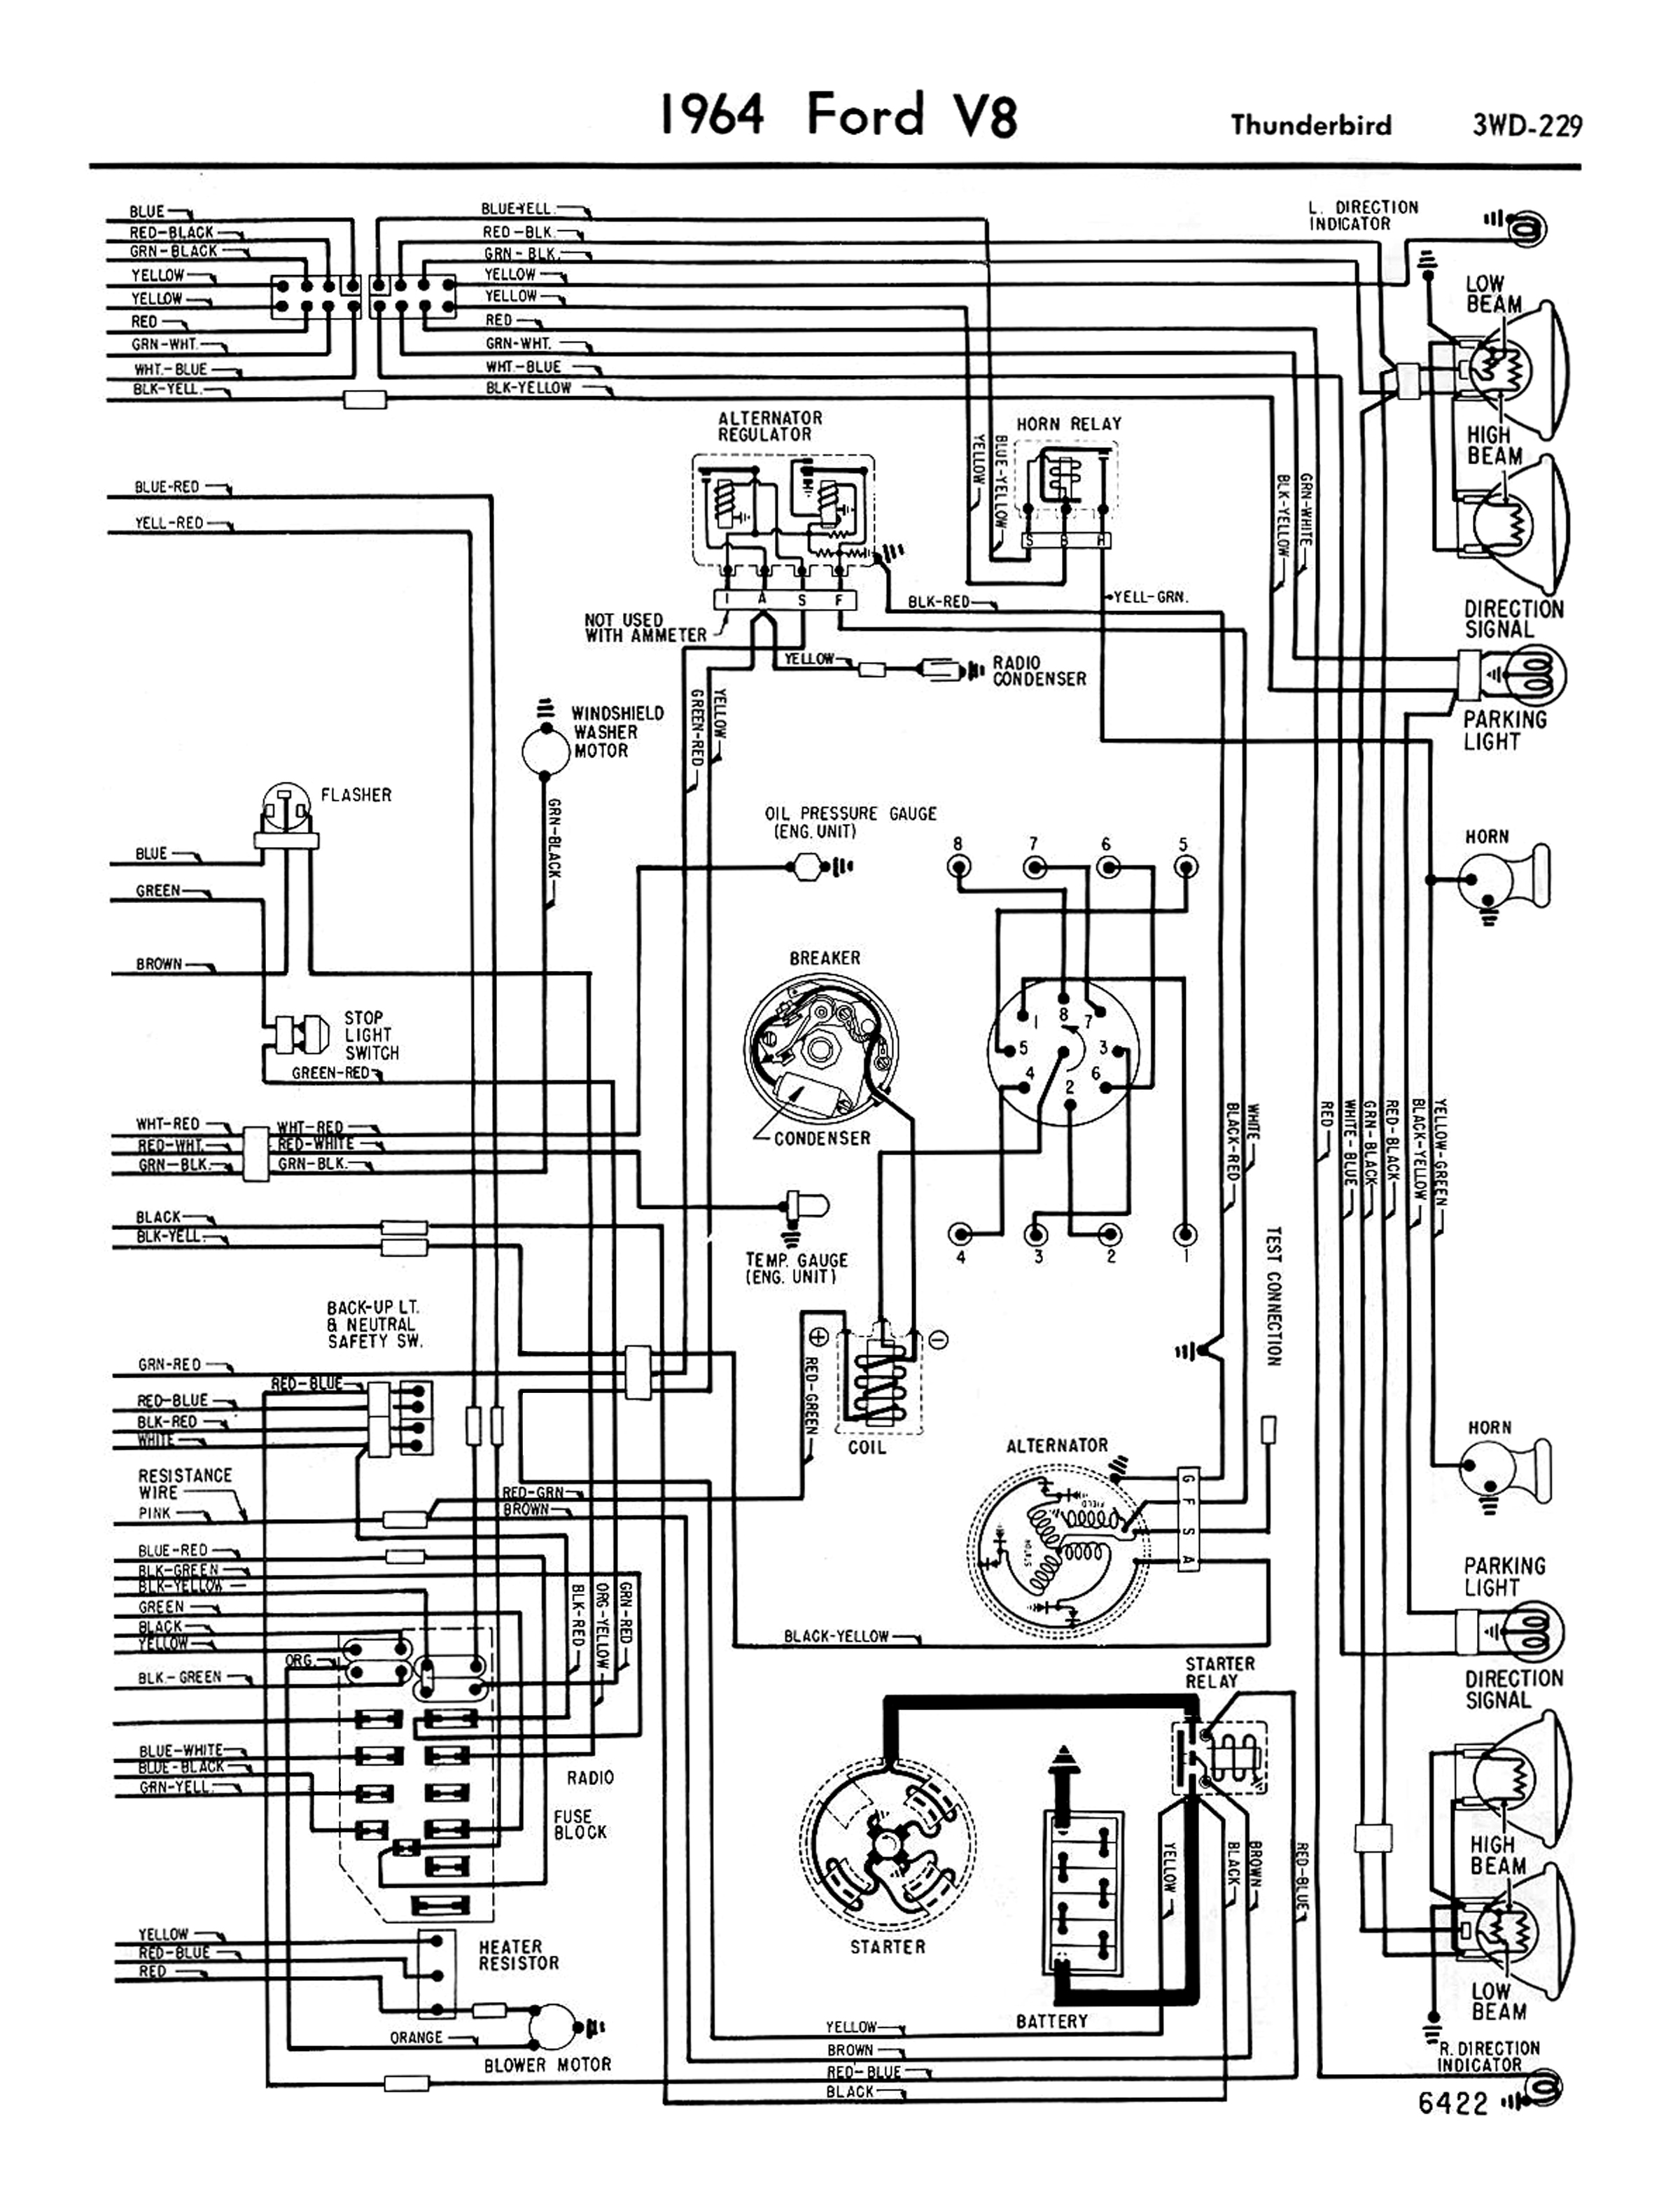 1964 Ford Thunderbird Fuel Wiring Diagram Content Resource Of F 250 For 1963 1958 68 Electrical Schematics Rh Squarebirds Org Vacuum 1965 Engine